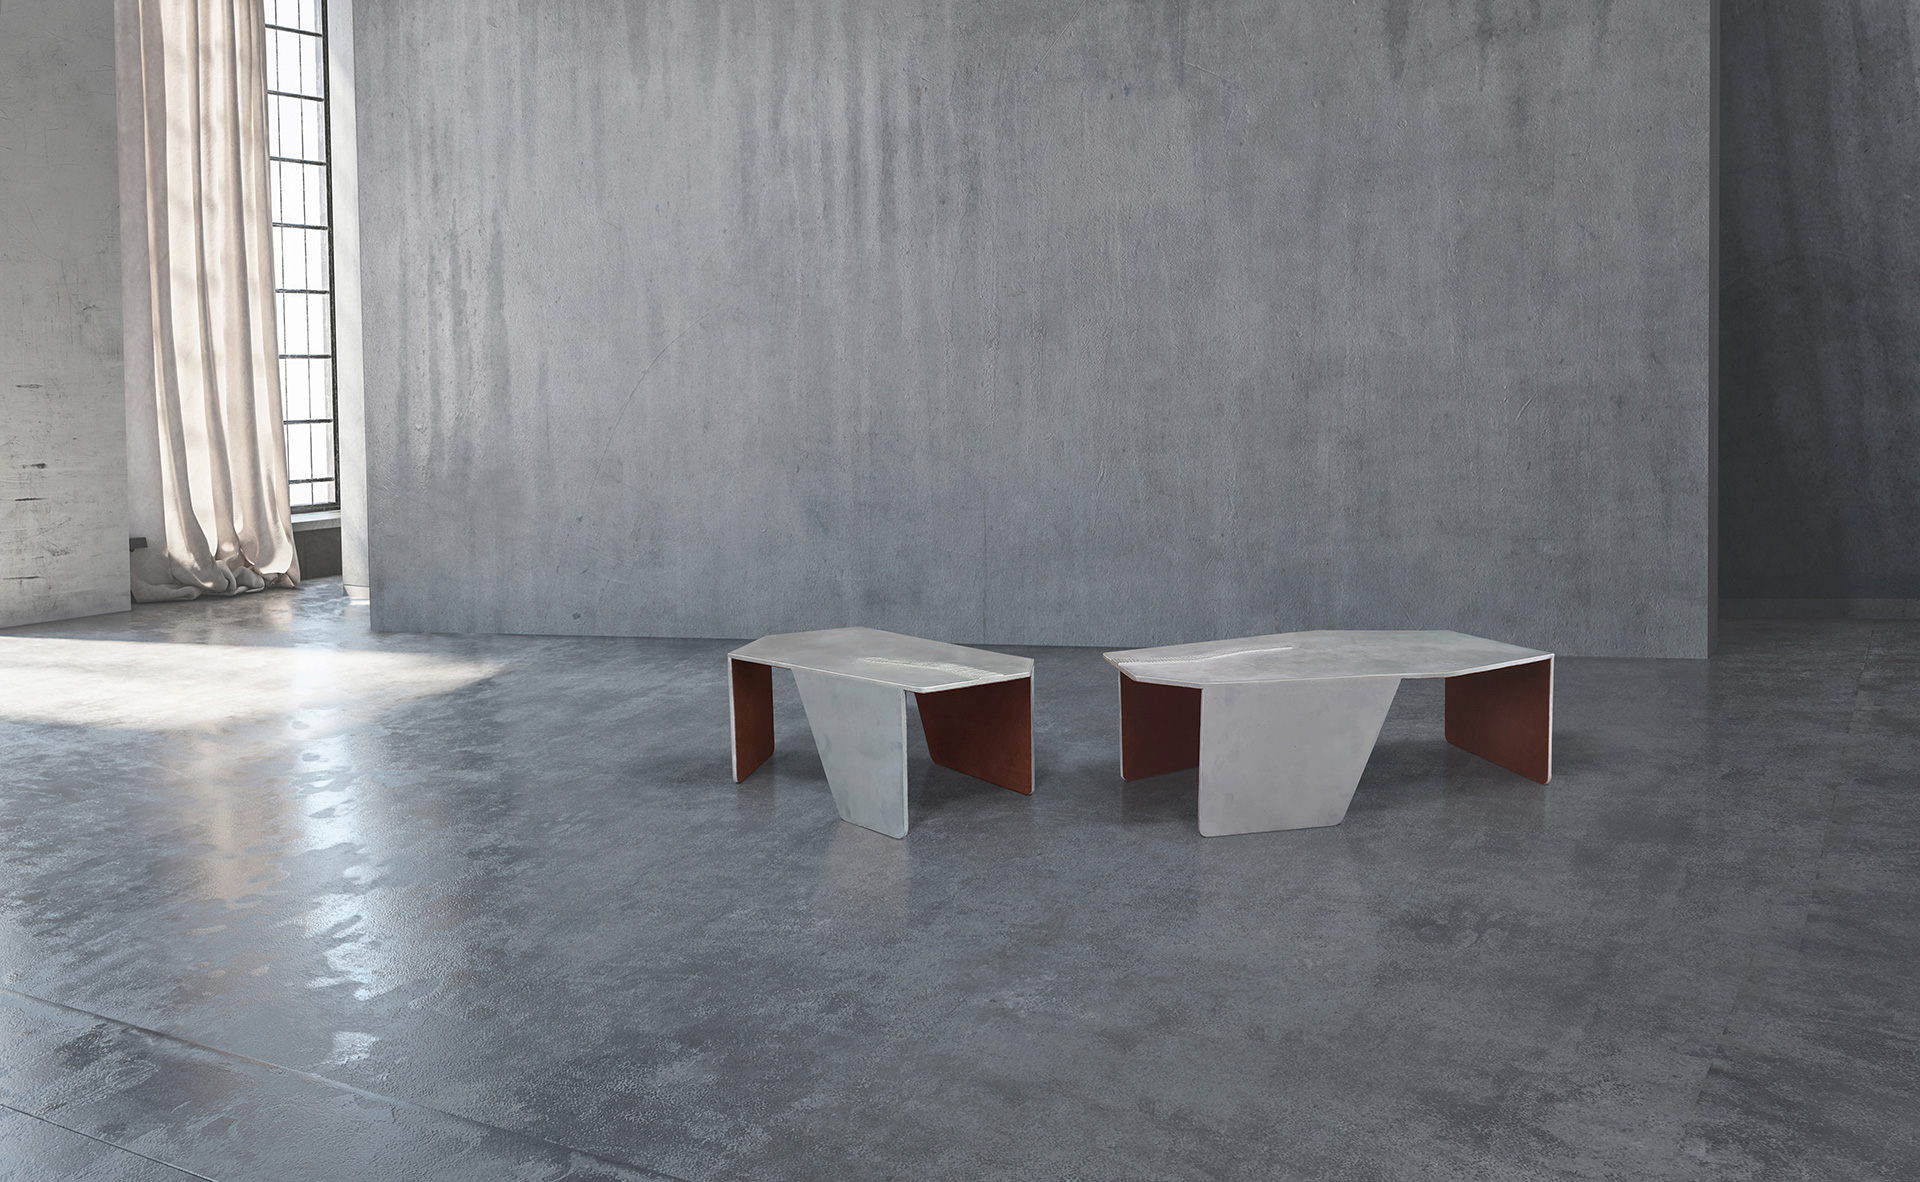 Coffee table by MUAR, inspired by the poem Las Lenguas de Diamante and La Estrella | Poetic Forms | Juana de Ibarbourou | London Design Festival | STIR